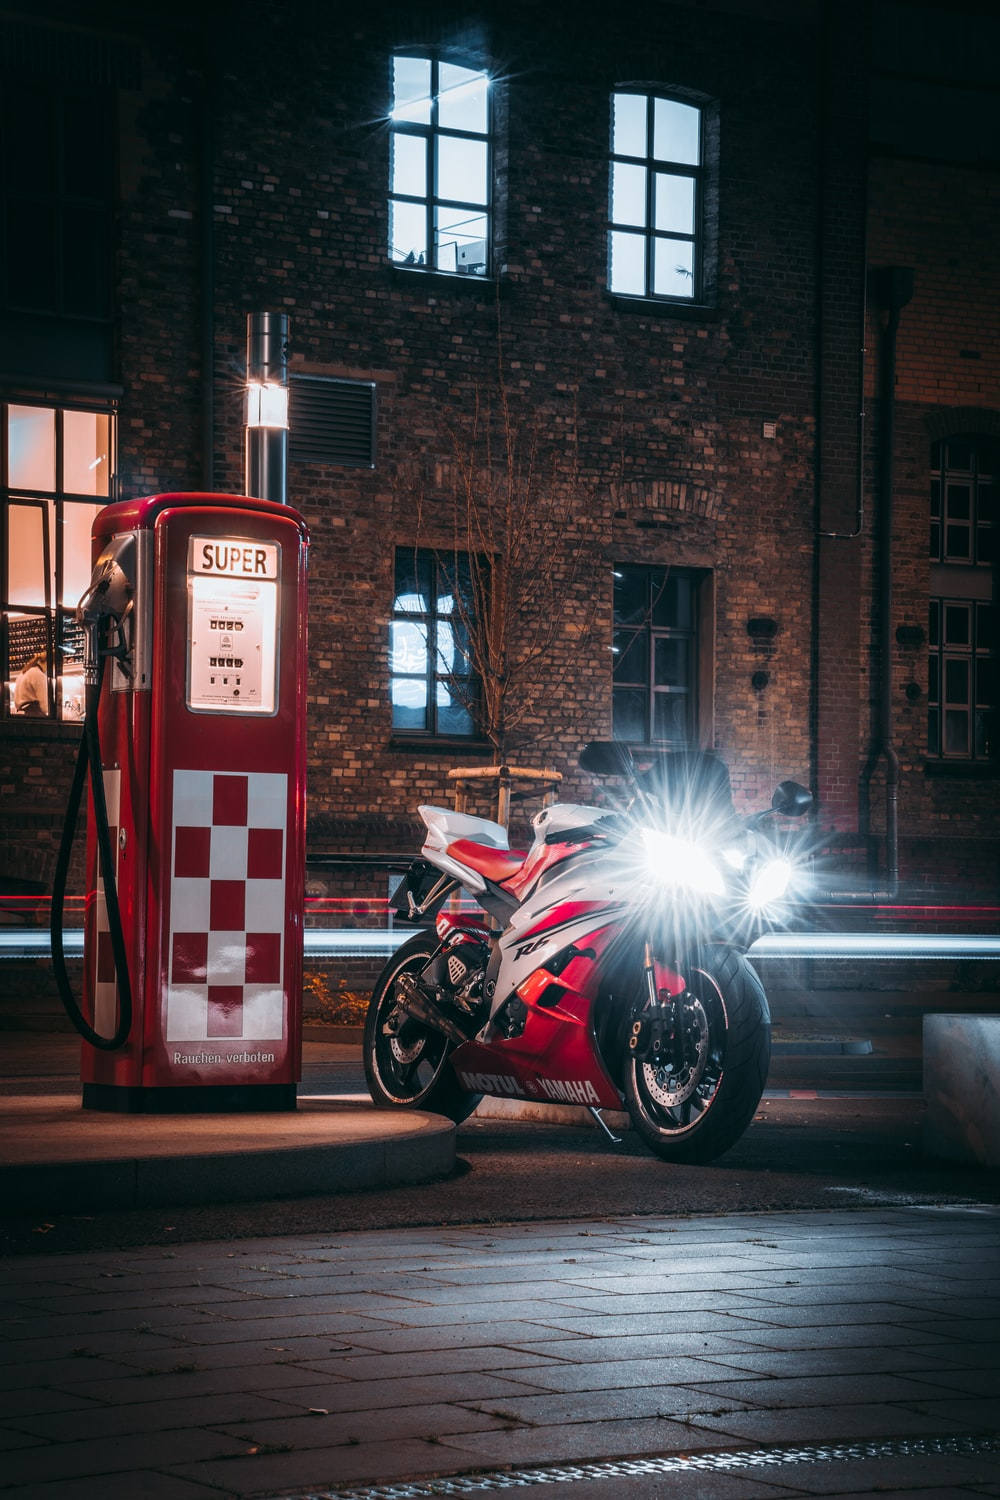 black motorcycle parked beside red and white fire extinguisher